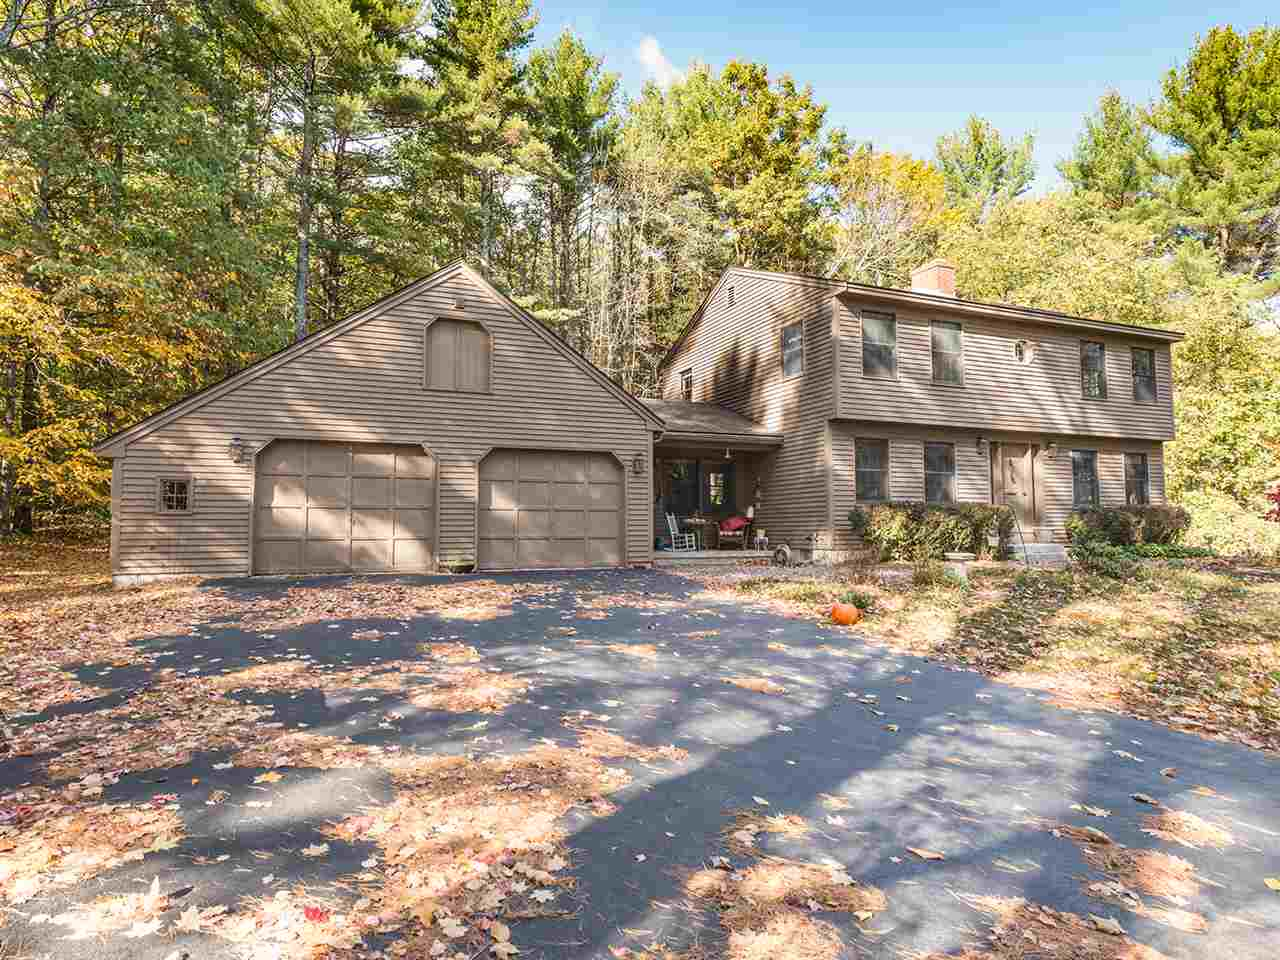 Photo of 144 Clay Hill Road York ME 03902-7508